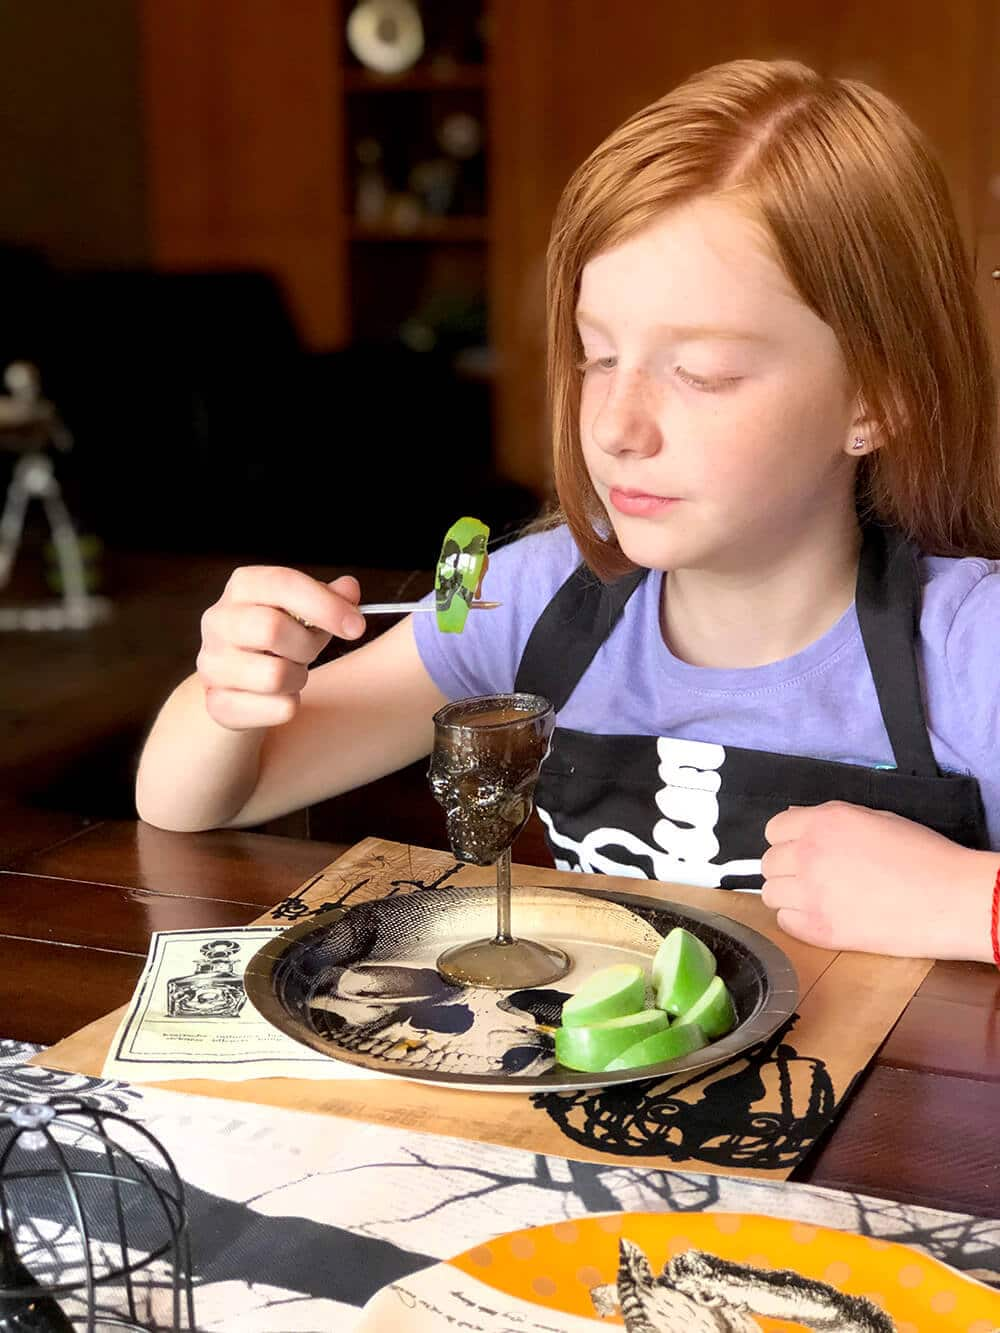 Girl dipping poison apple slices into caramel